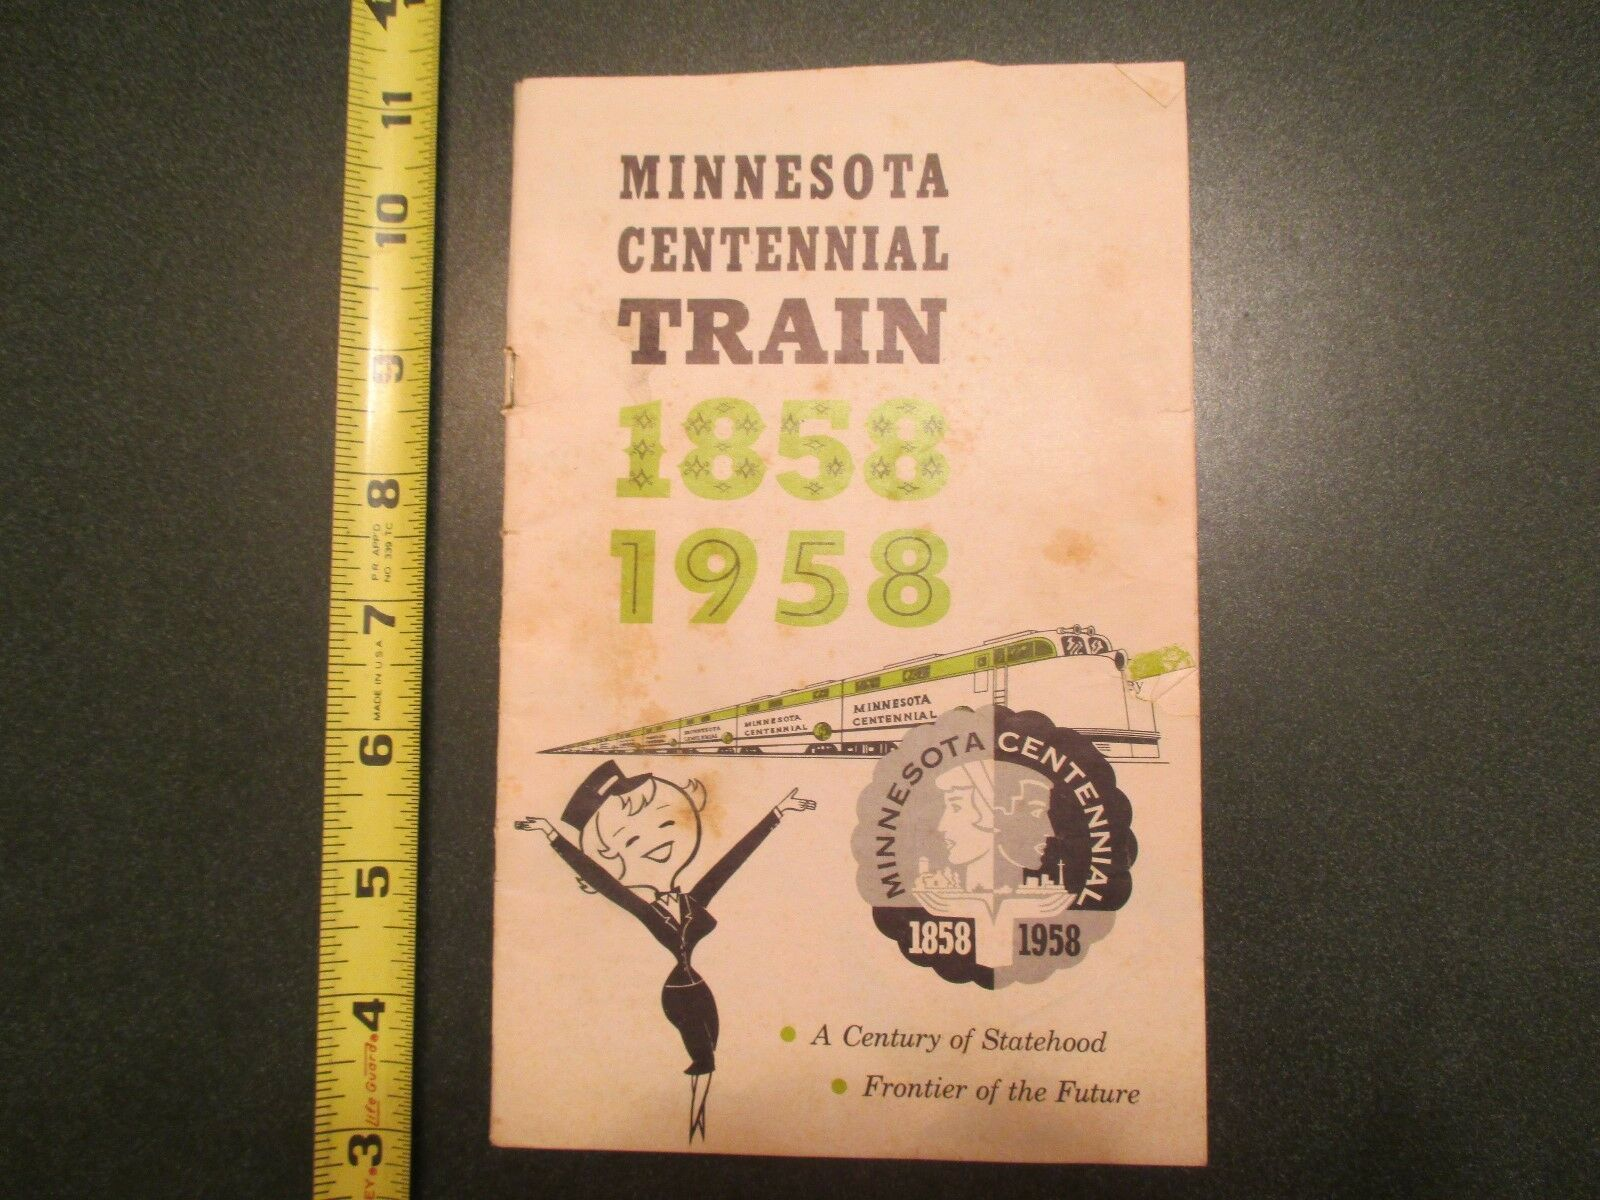 1958 Minnesota MN Centennial Train A century of Statehood